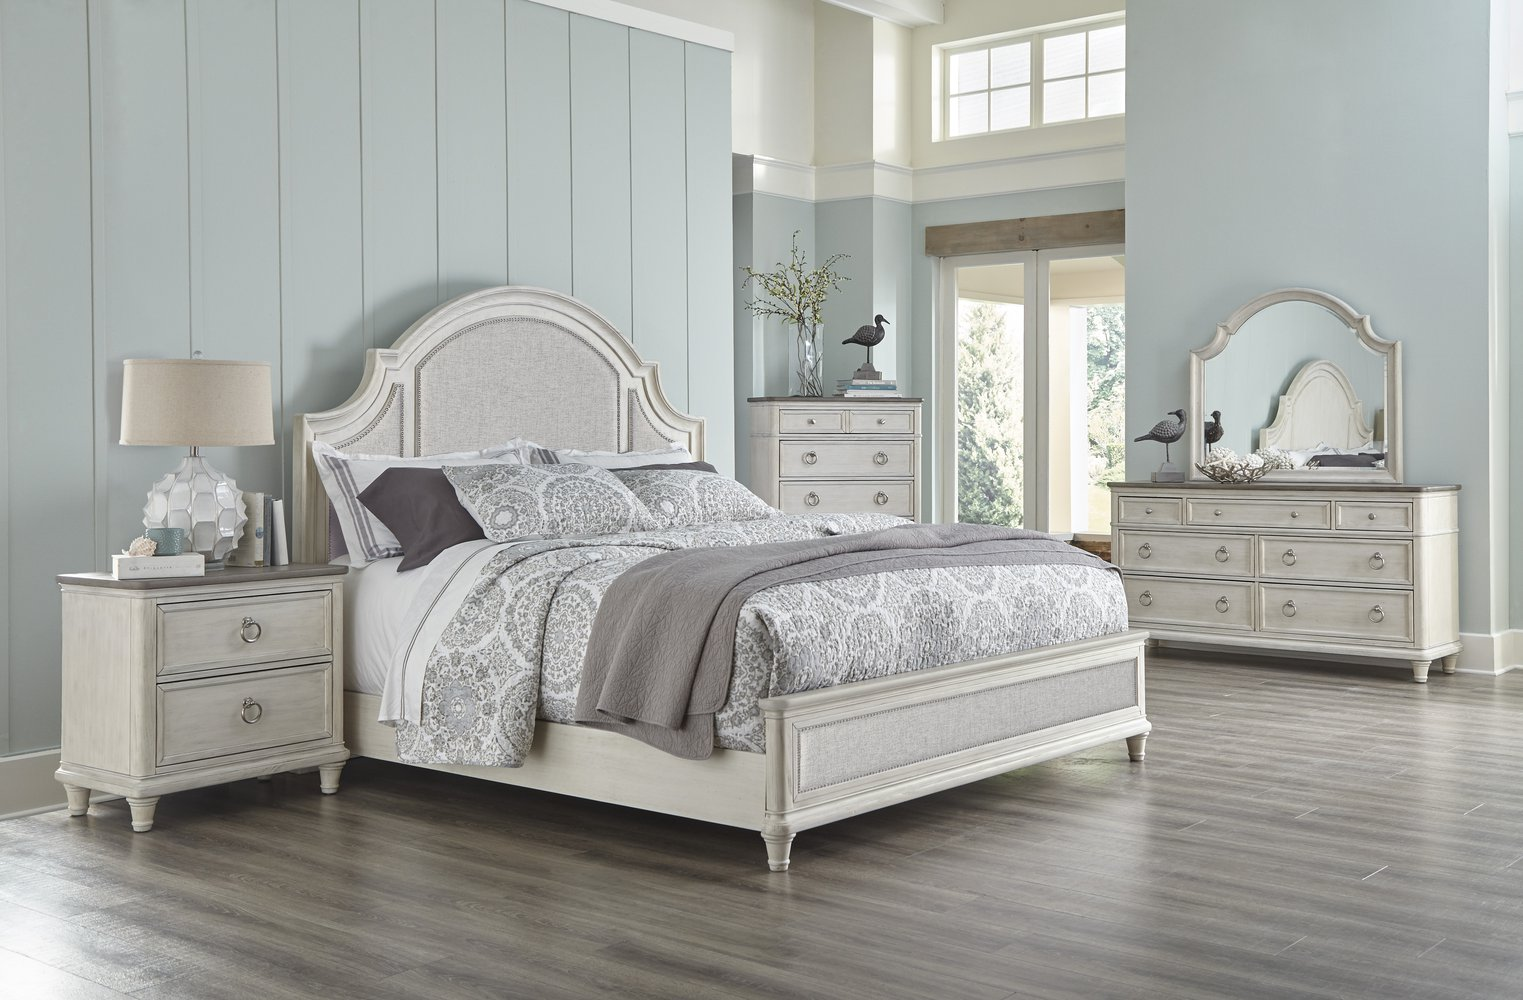 4-29300-67_29301-02-150-RS_NEW.max-2000x1000 Palmetto Home Furniture Bedroom on pottery barn furniture, adirondack home furniture, plantation home furniture,